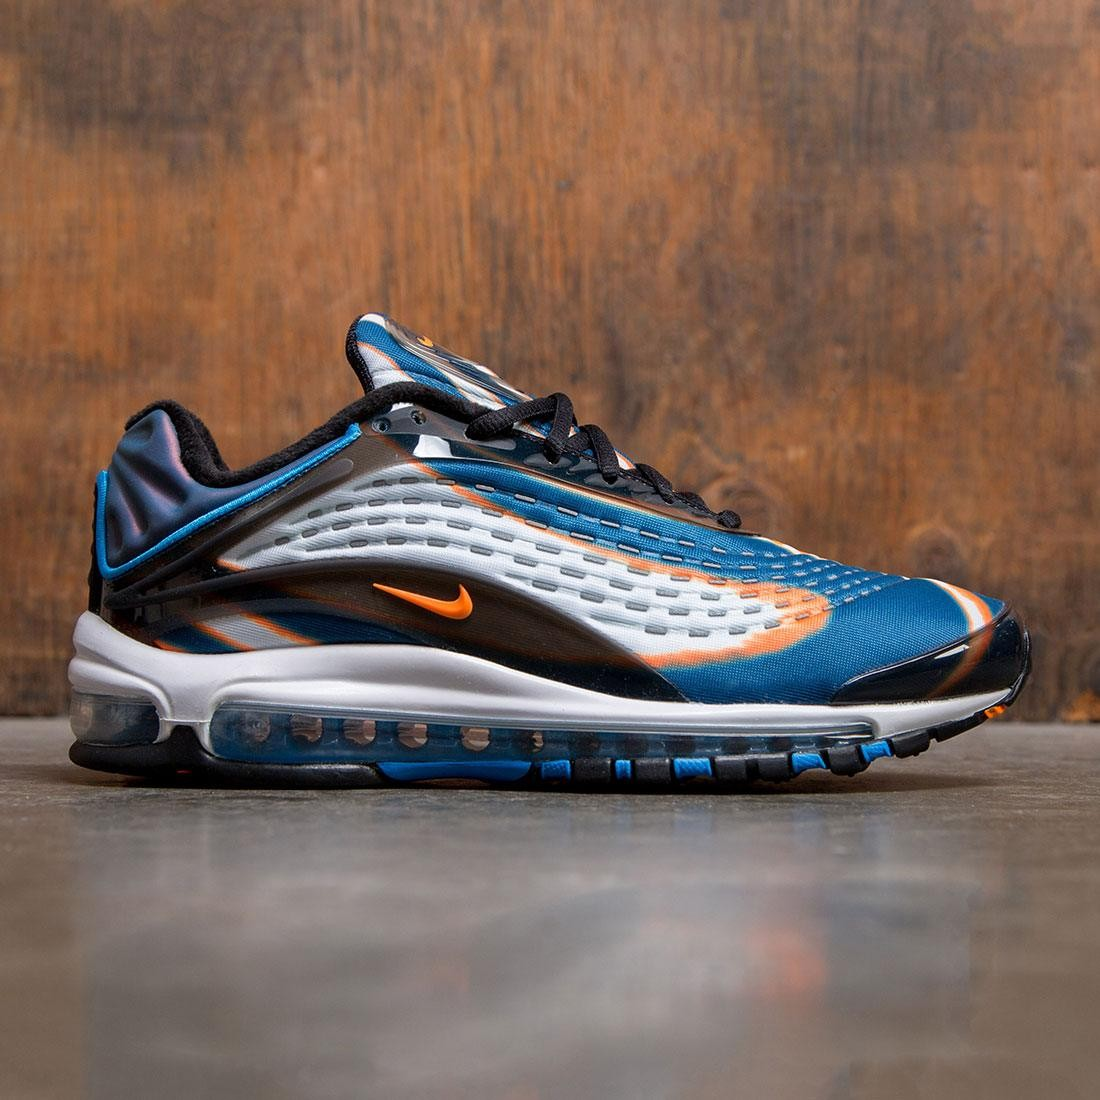 98c55ff106 nike men air max deluxe cool grey total orange blue force black